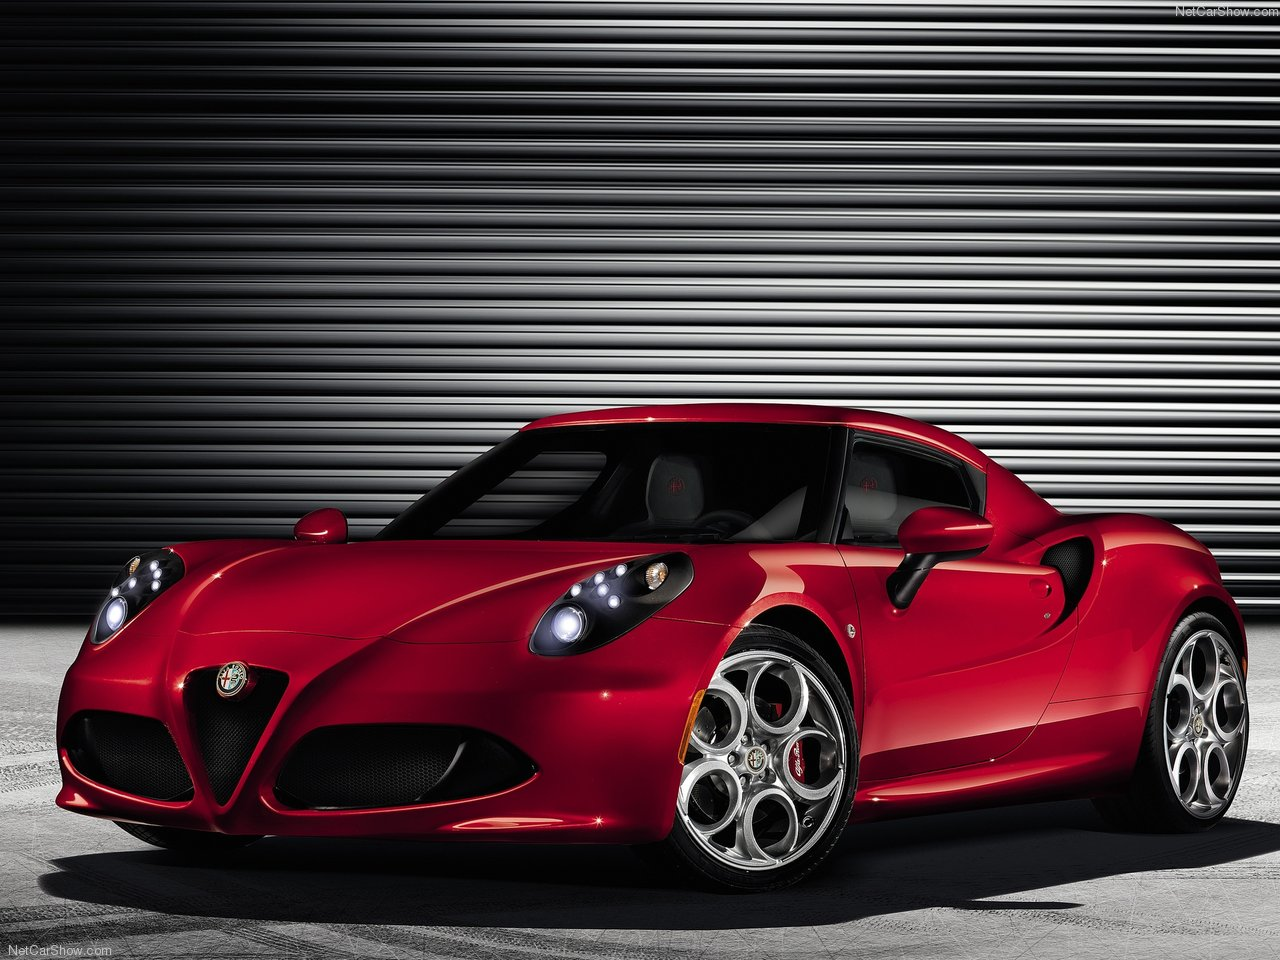 alfa romeo 4c 2014 hd wallpapers hd wallpapers. Black Bedroom Furniture Sets. Home Design Ideas